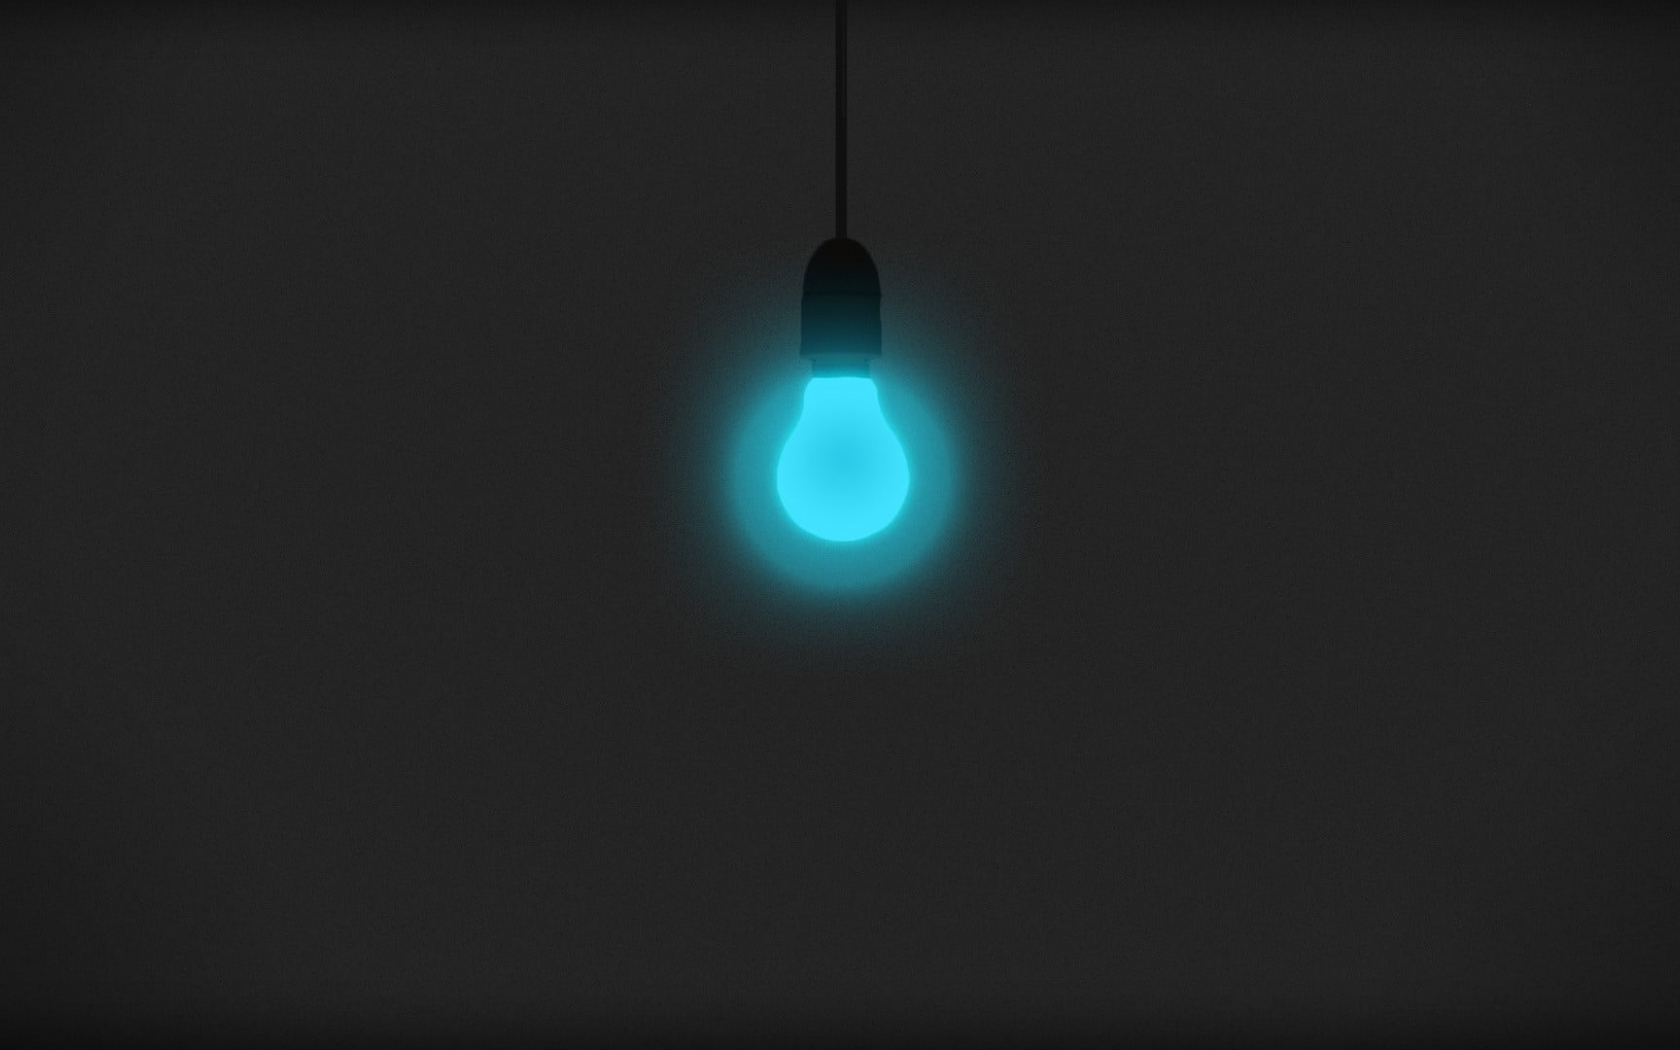 Free Download Incandescent Light Bulb Minimalism Lights Hd Images, Photos, Reviews